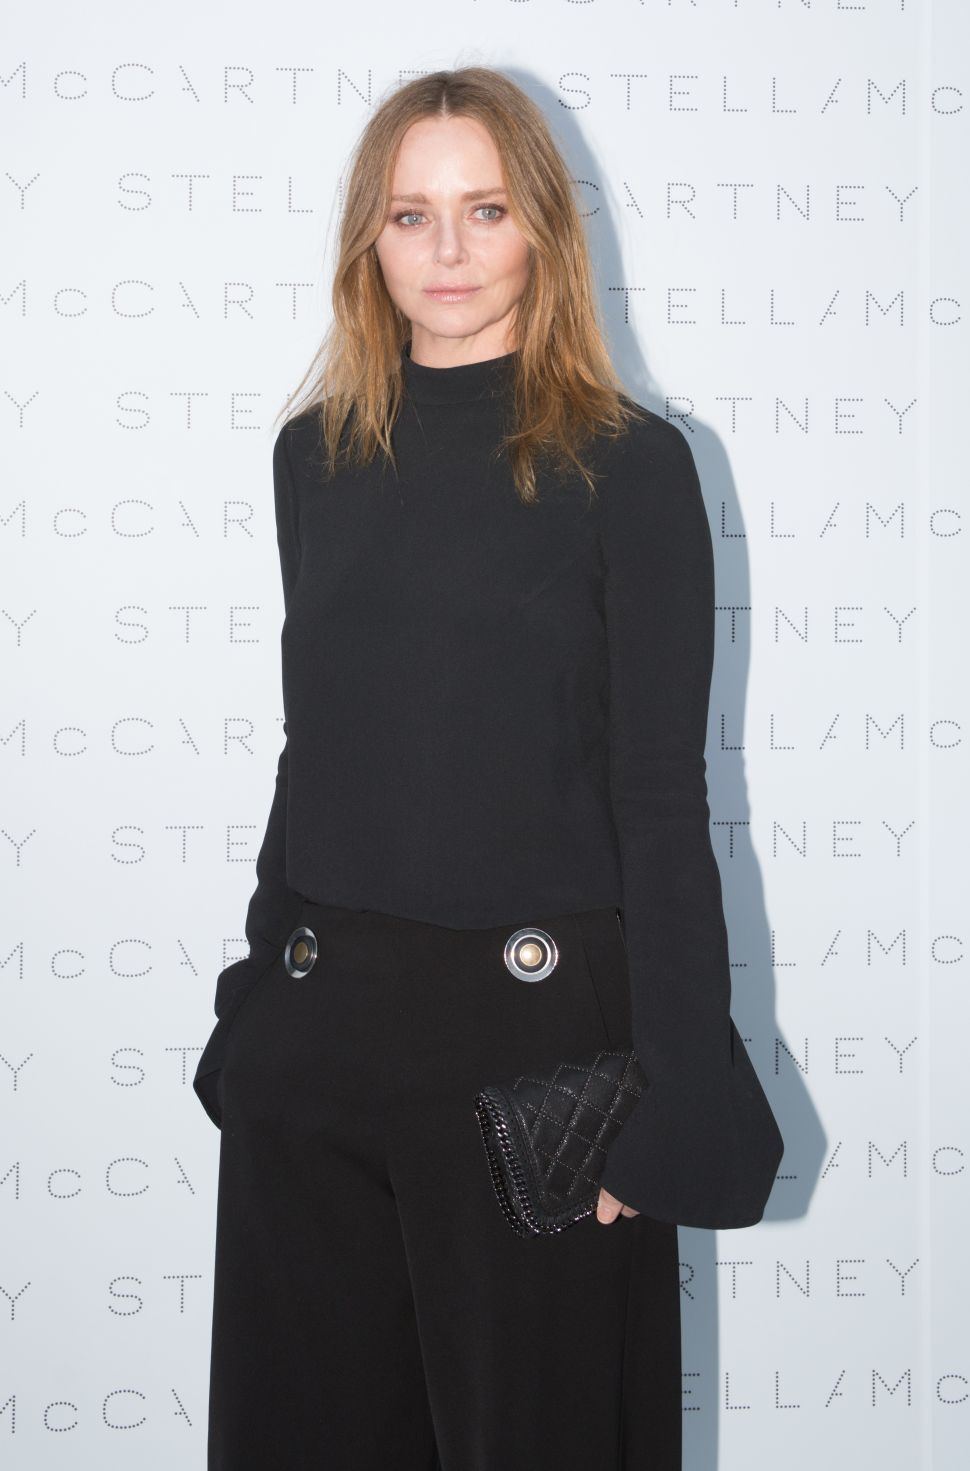 Stella McCartney for the Olympics, Manolo Blahnik to Make Bags, and More News to Know